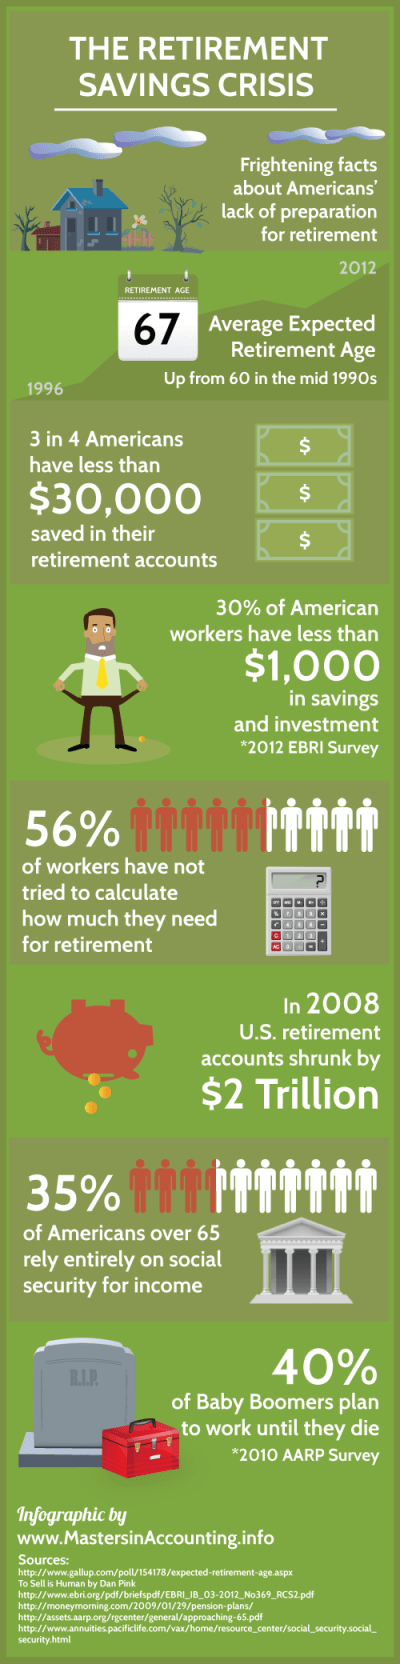 Infographic: The Retirement Savings Crisis